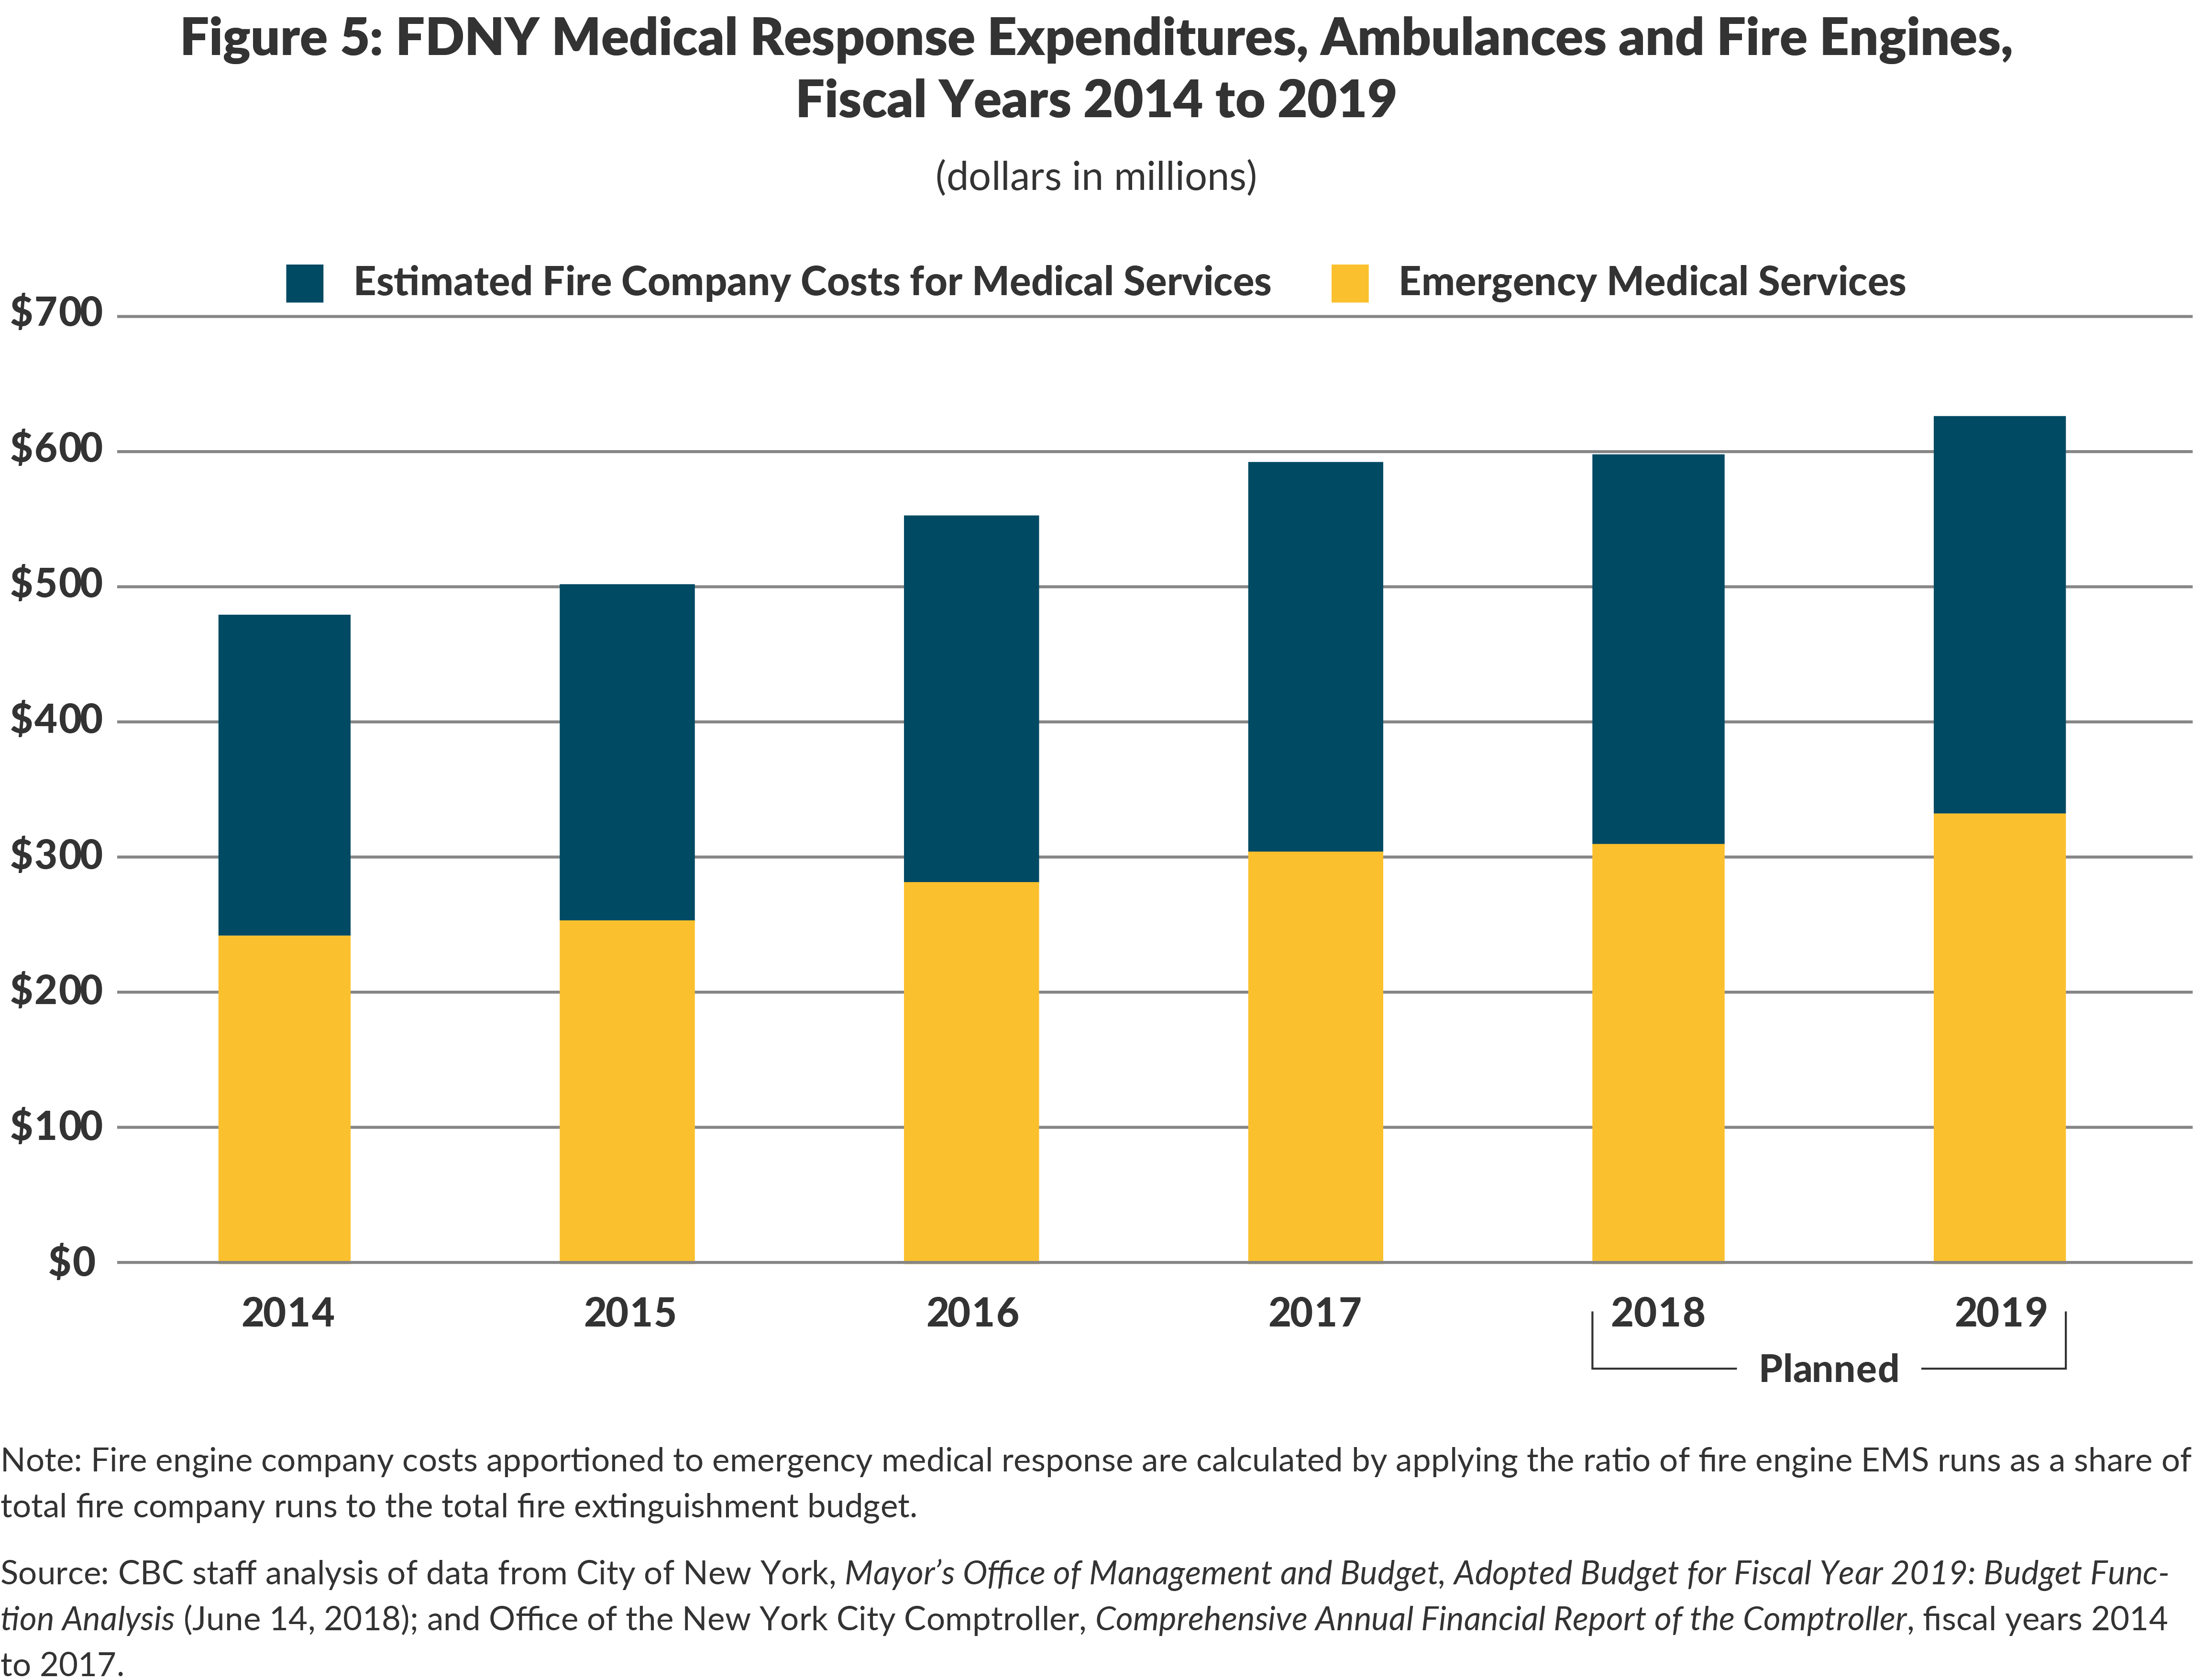 Figure 5: FDNY Medical Response Expenditures, Ambulances and Fire Engines, Fiscal Years 2014 to 2019